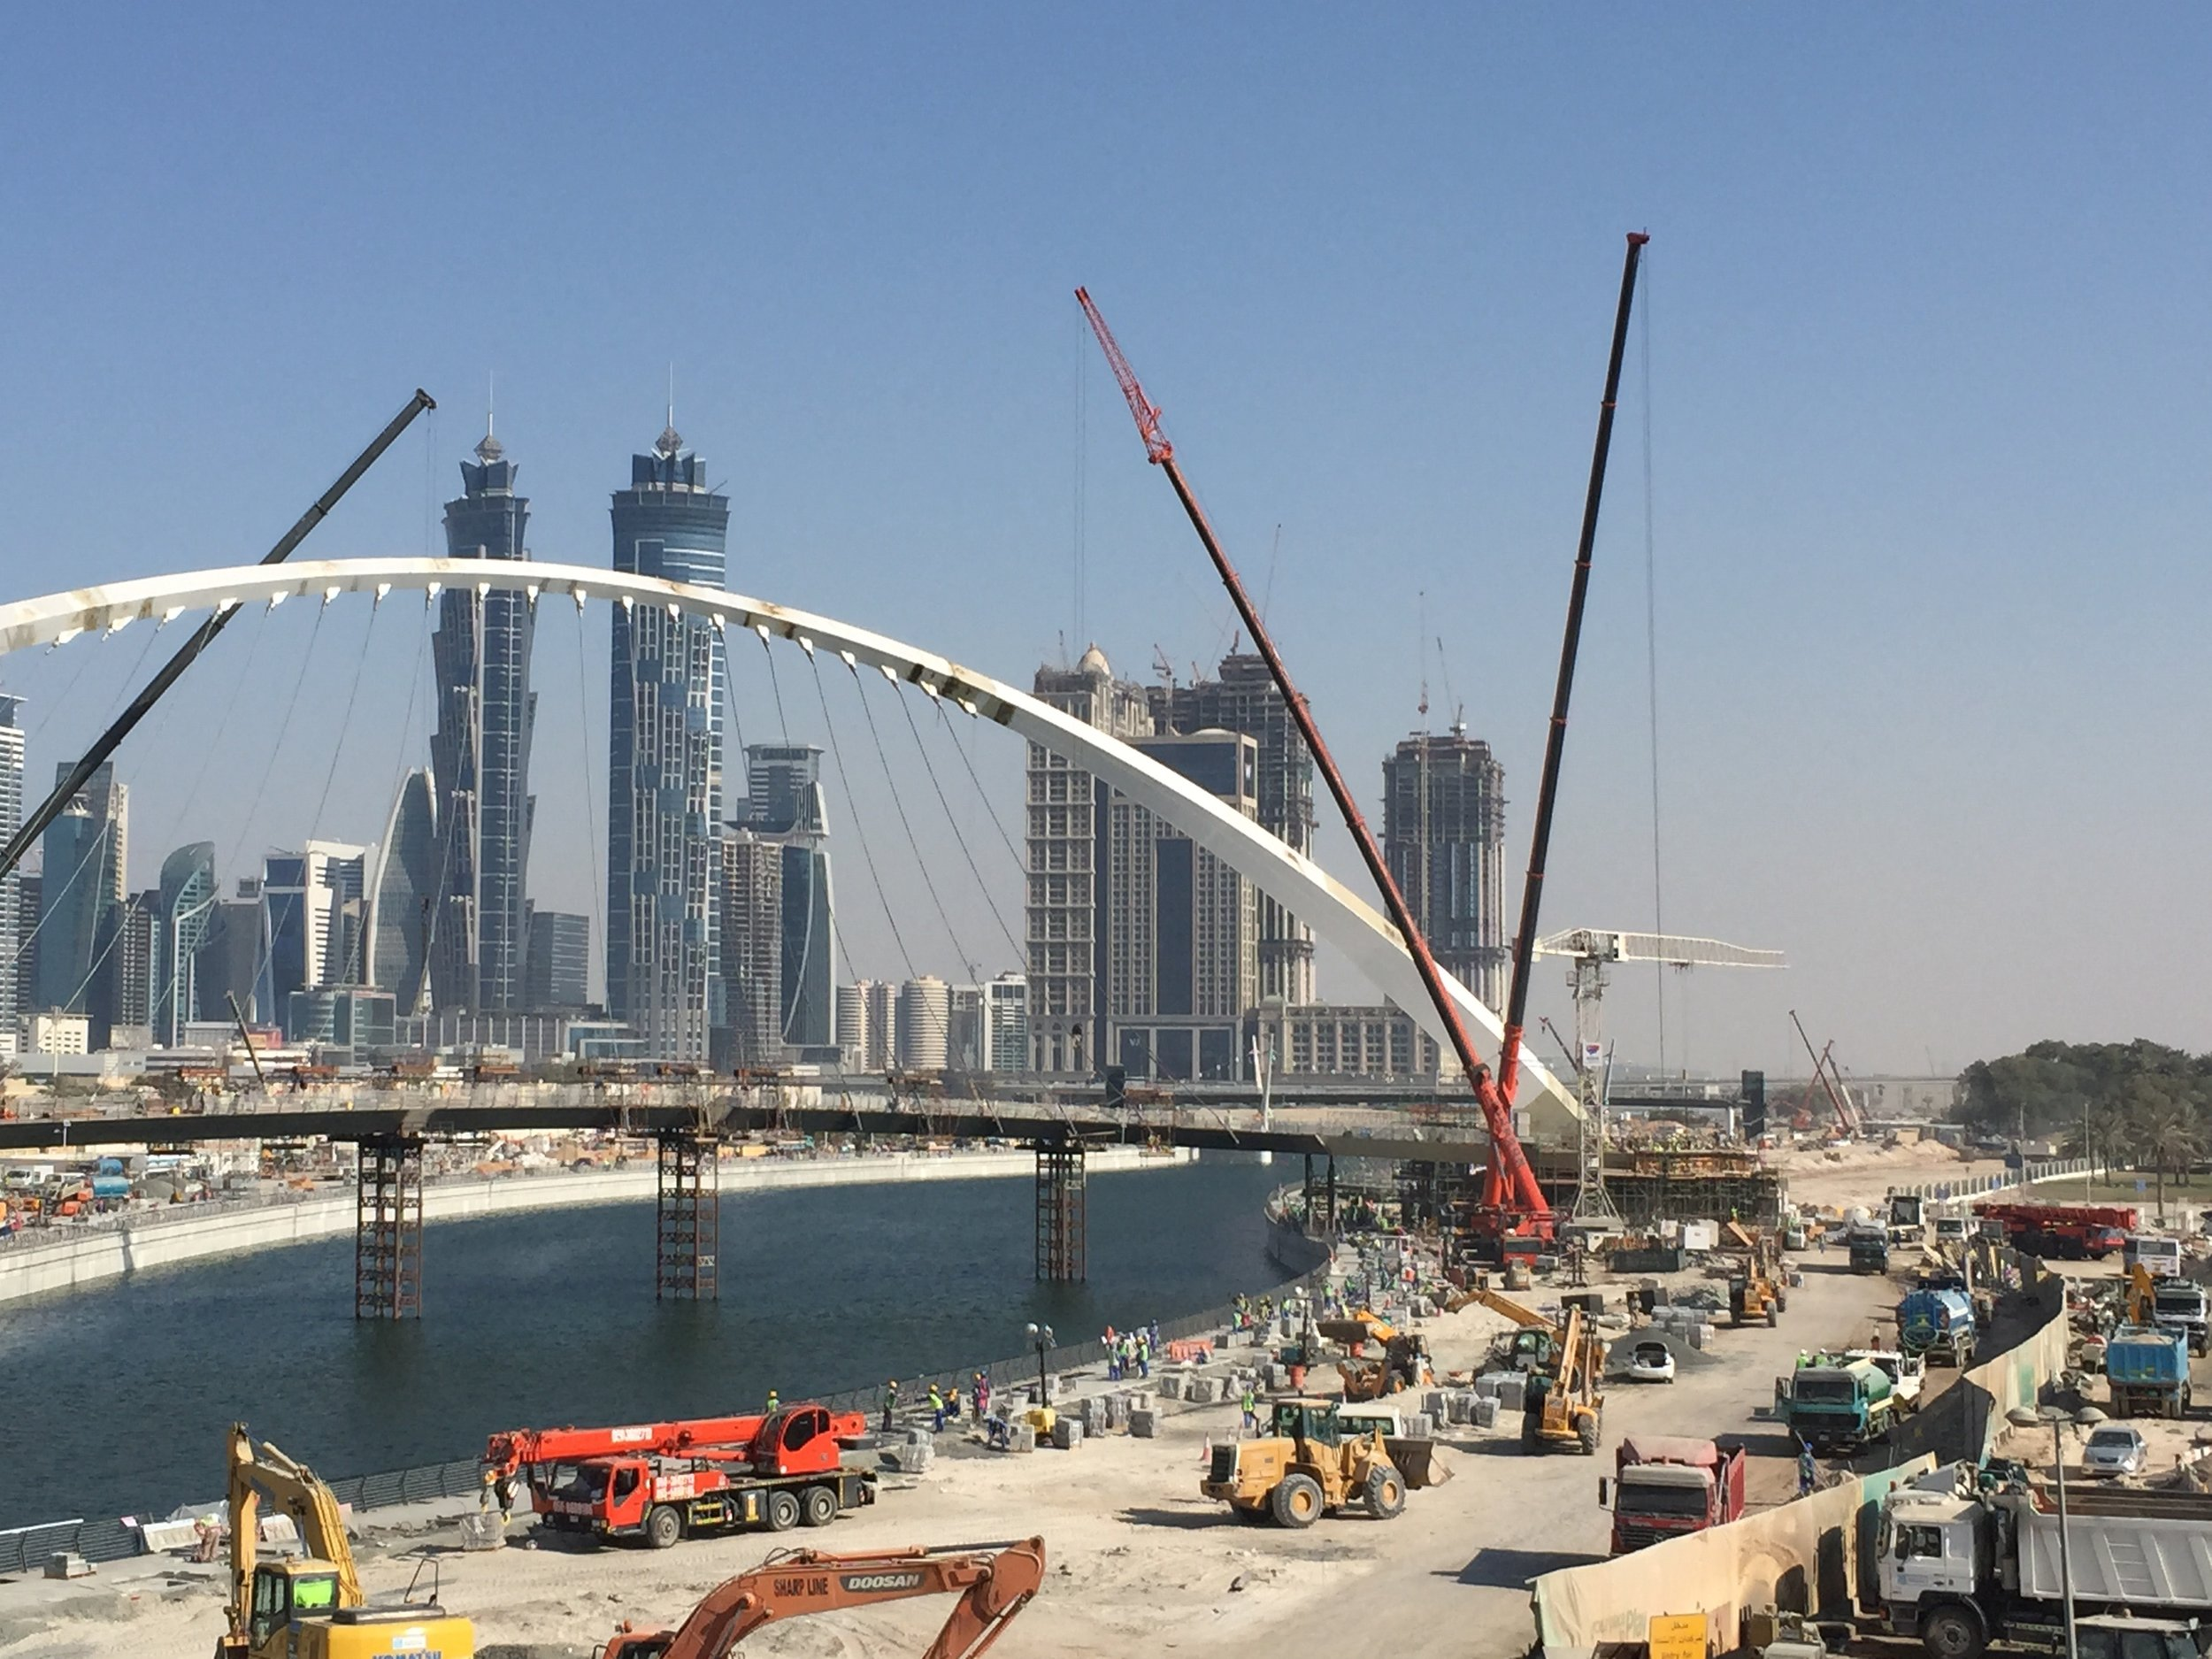 The Dubai Water Canal during its construction stage is just one example of the constantly changing urban environment in Dubai. Courtesy Arch. Season '17.